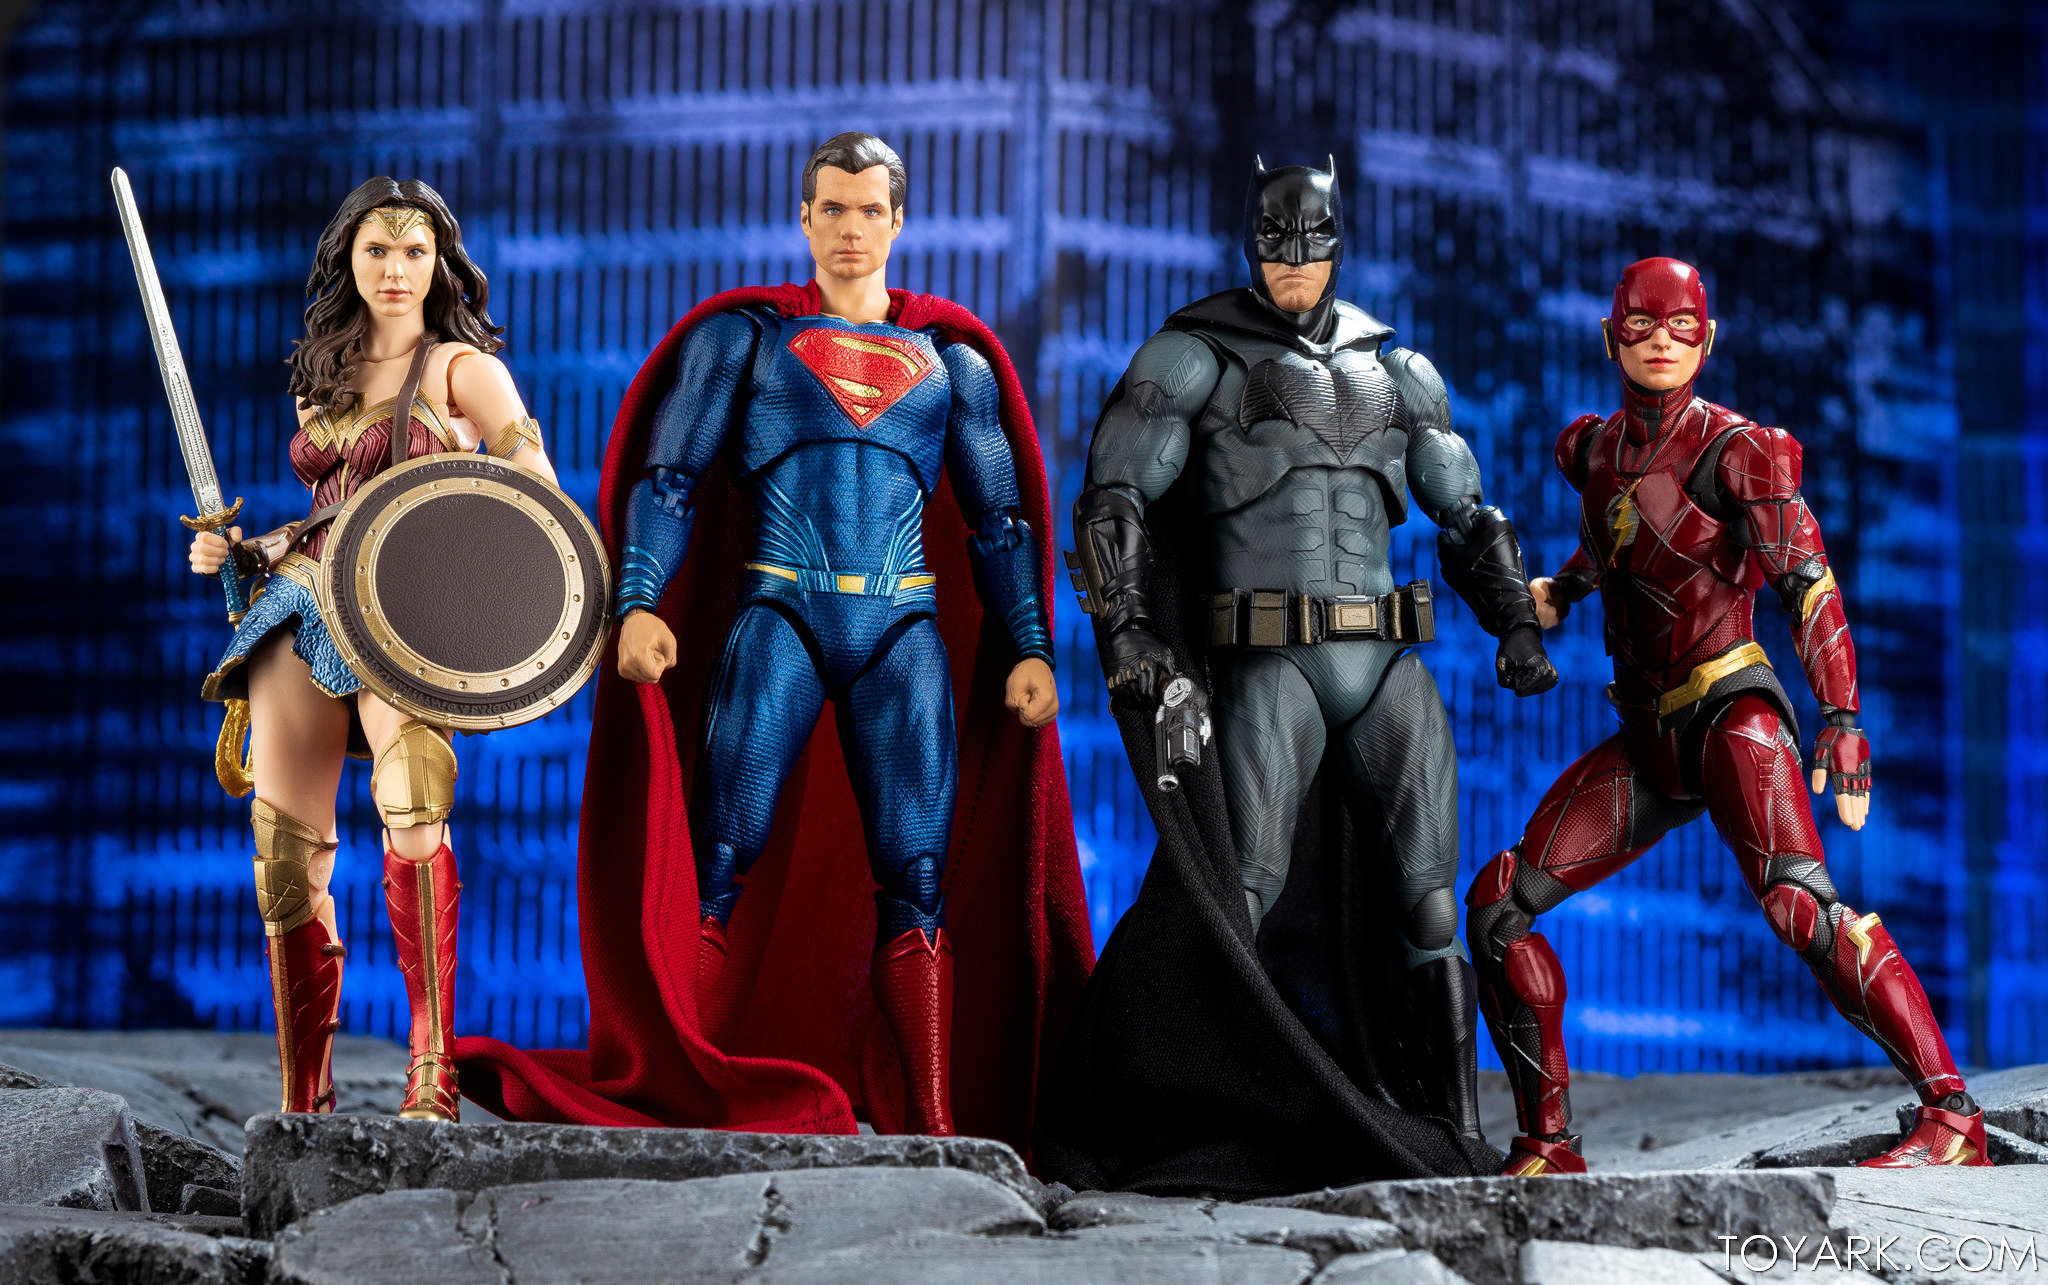 IN STOCK S.H Figuarts Justice League Superman Figure USA Bandai Tamashii SH Toy